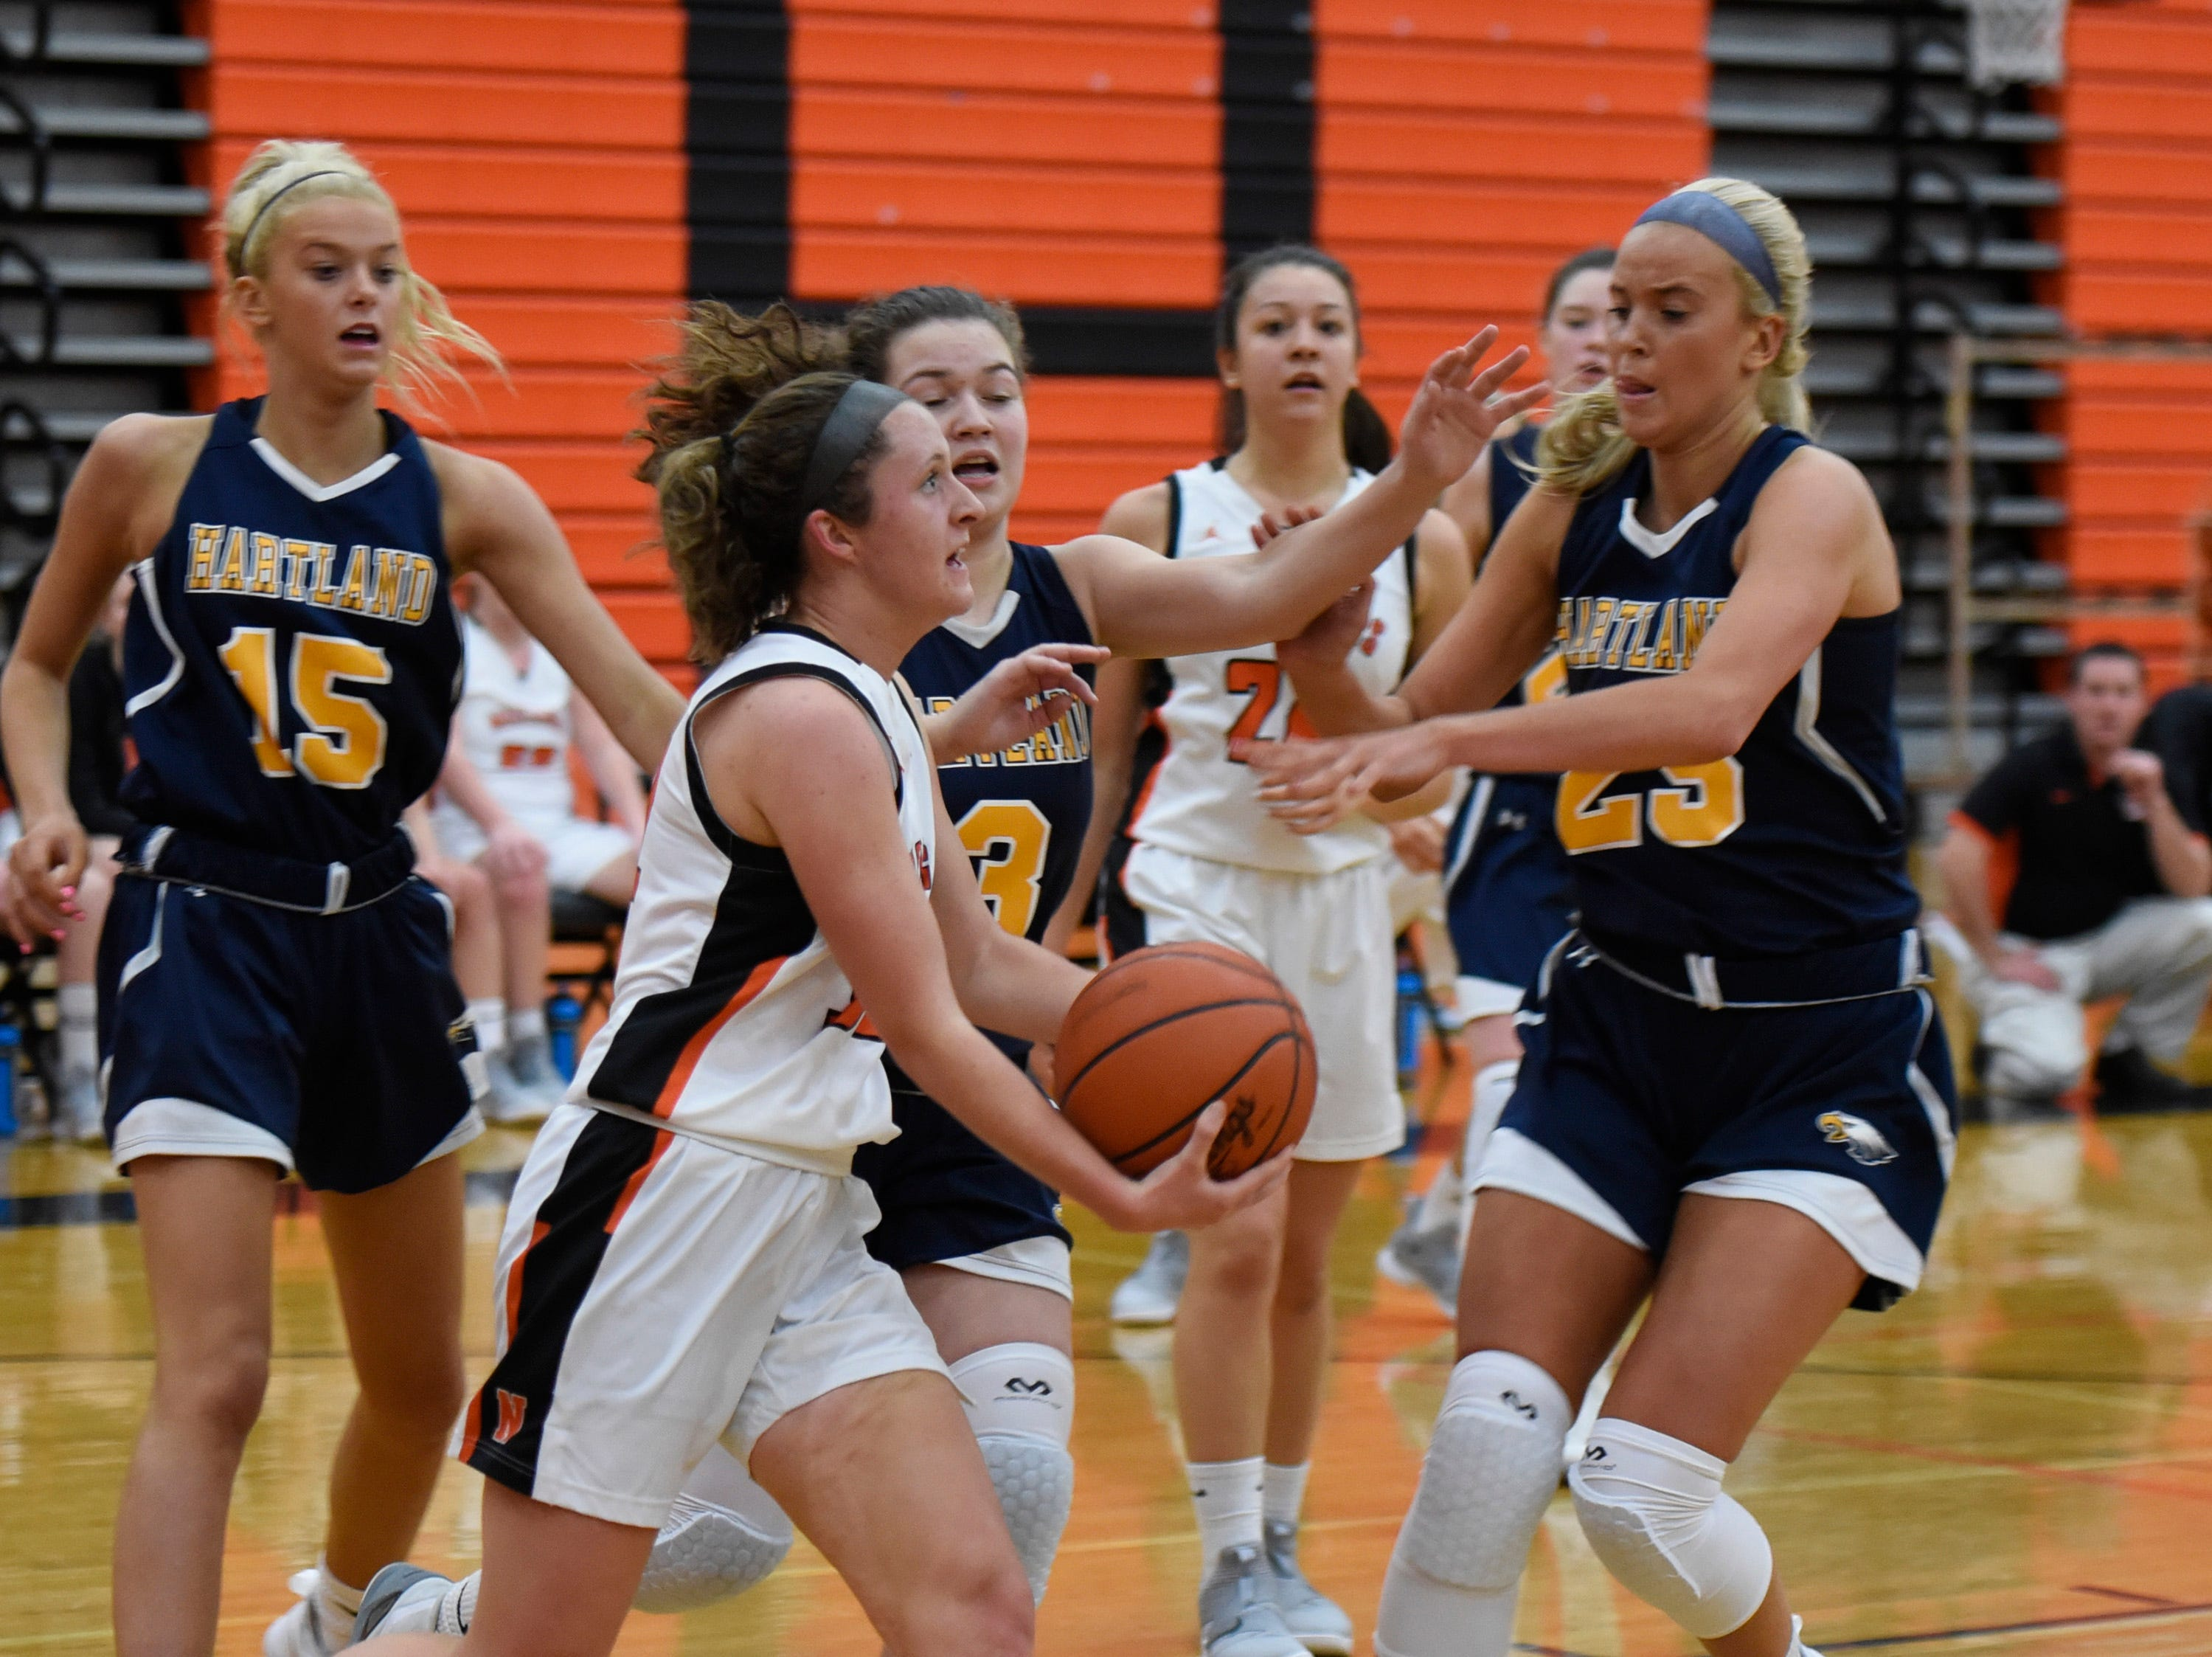 Northville's Ellie Thallman (32) and Hartland's Whitney Sollom (25) during a KLAA match up between the Mustangs and Eagles at Northville Jan. 8, 2019